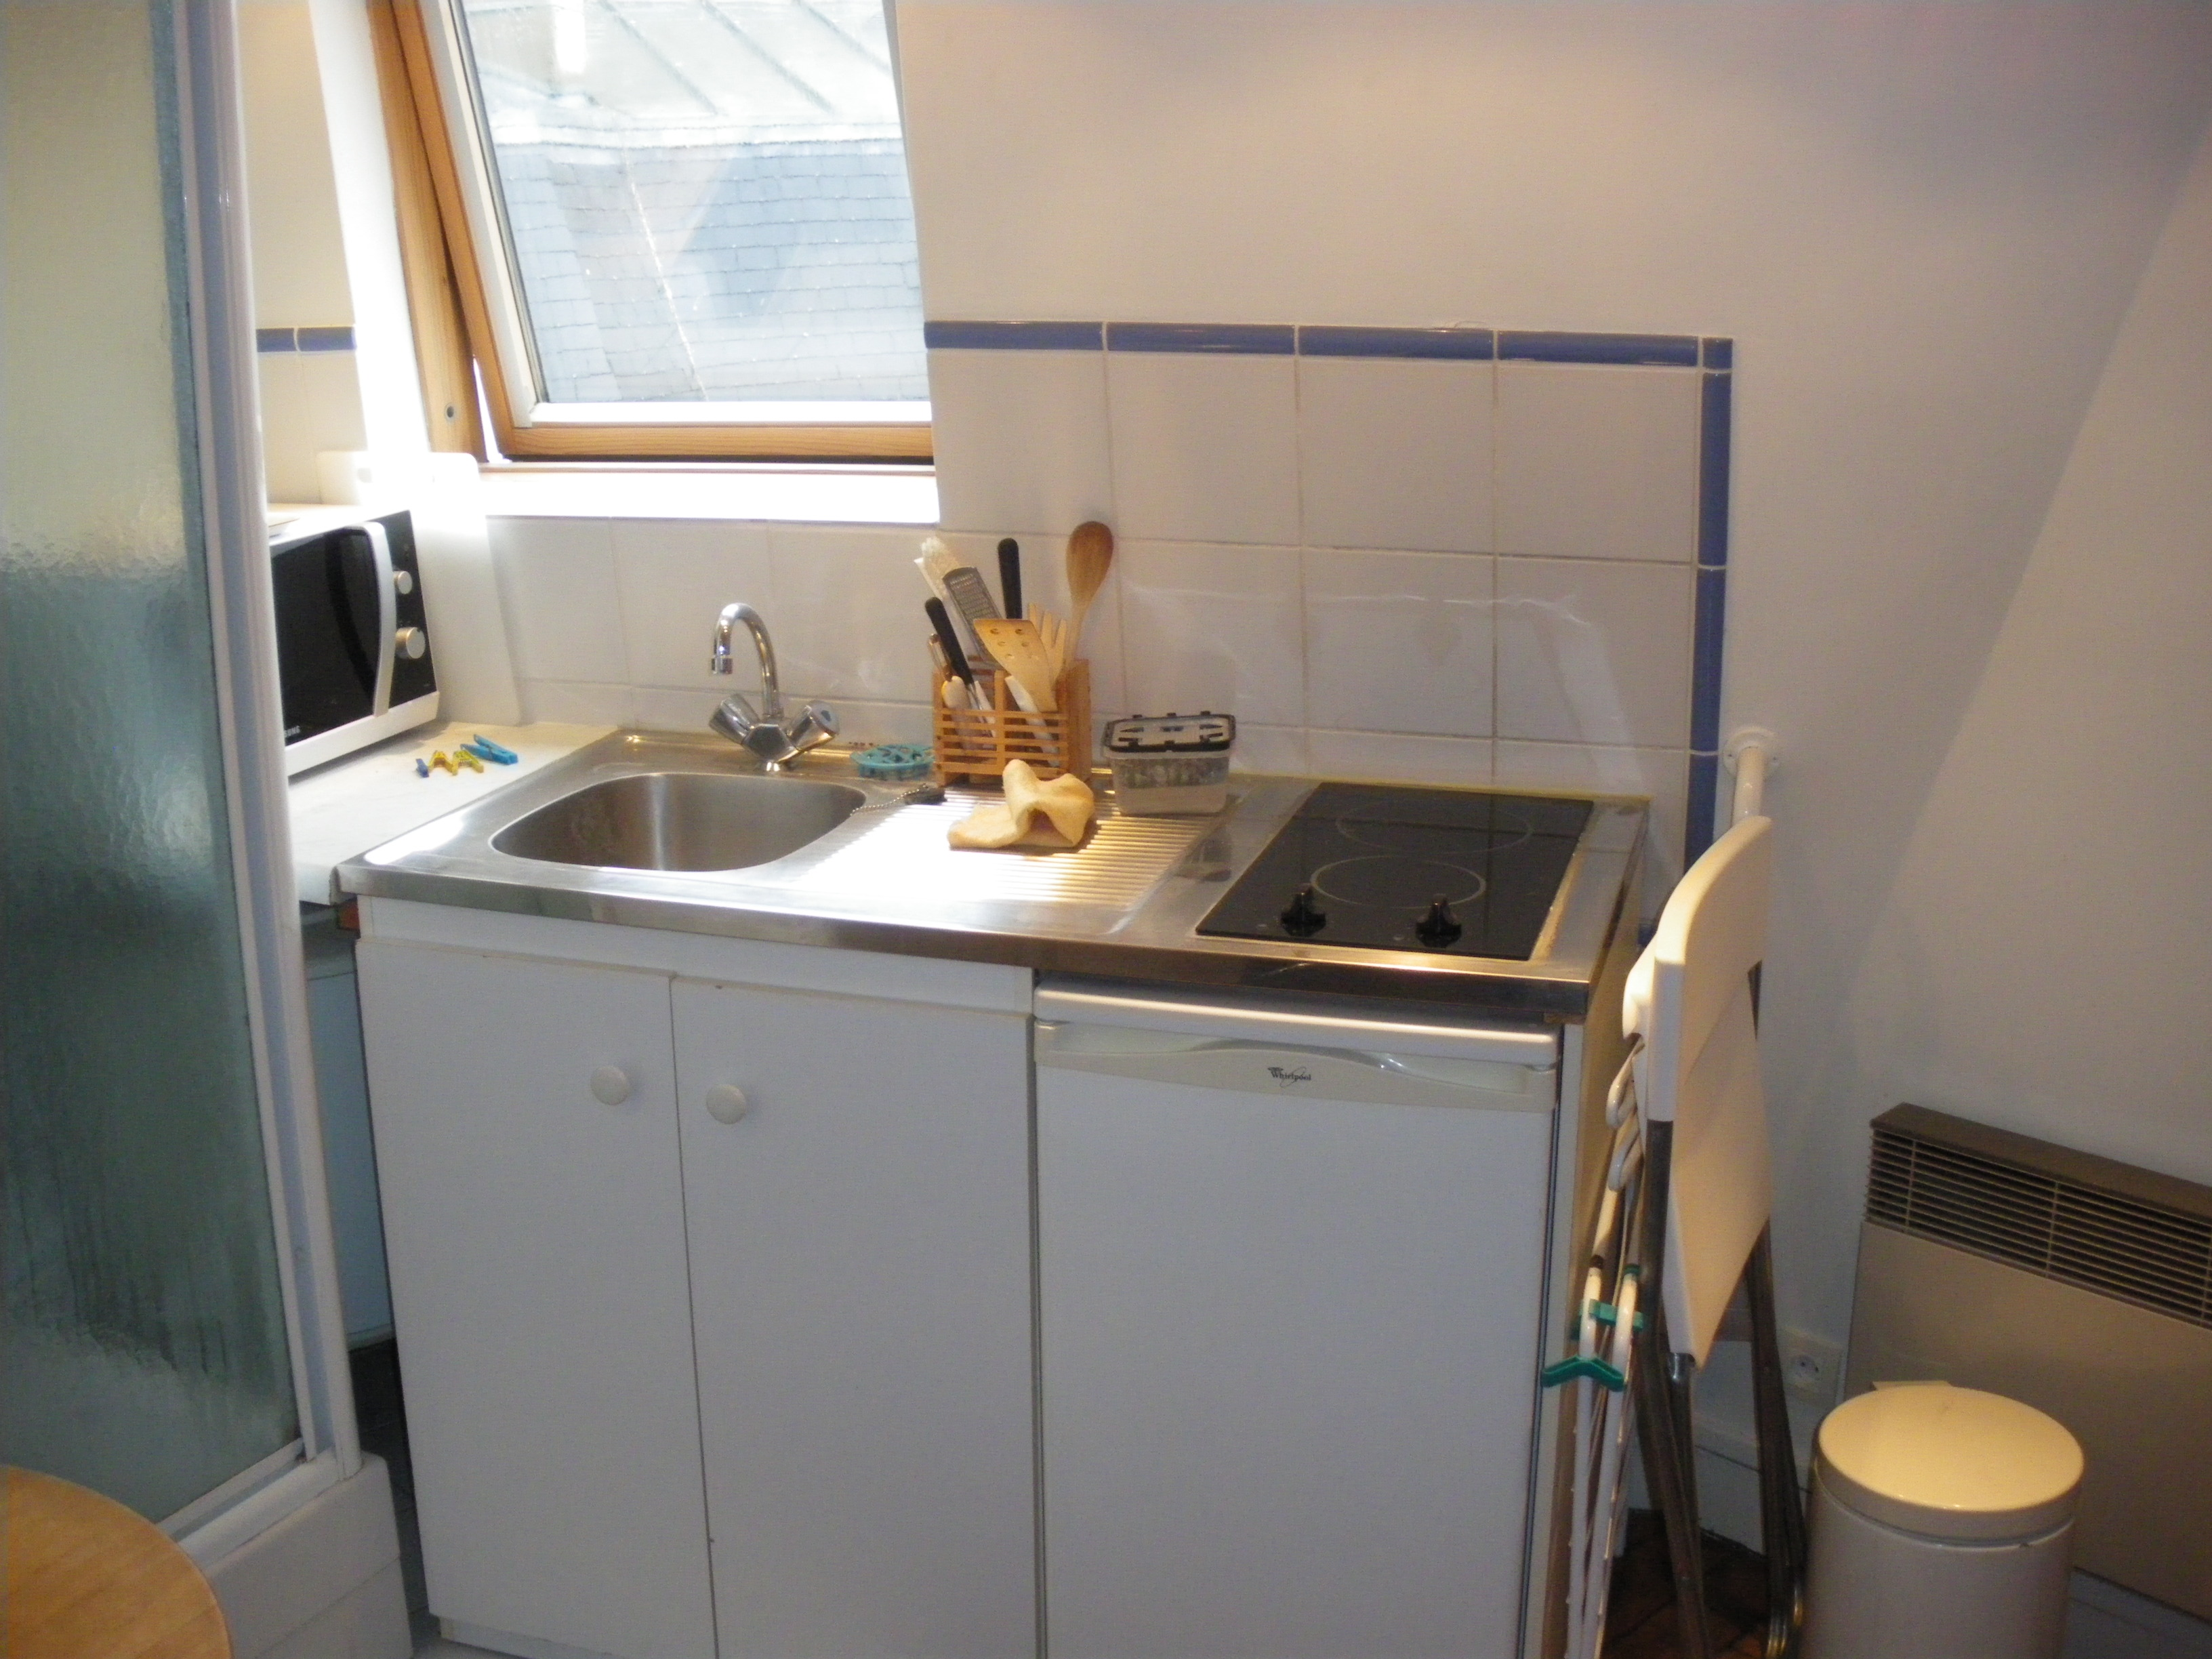 Location tudiant location studio meubl paris 16 for Appartement meuble paris 16